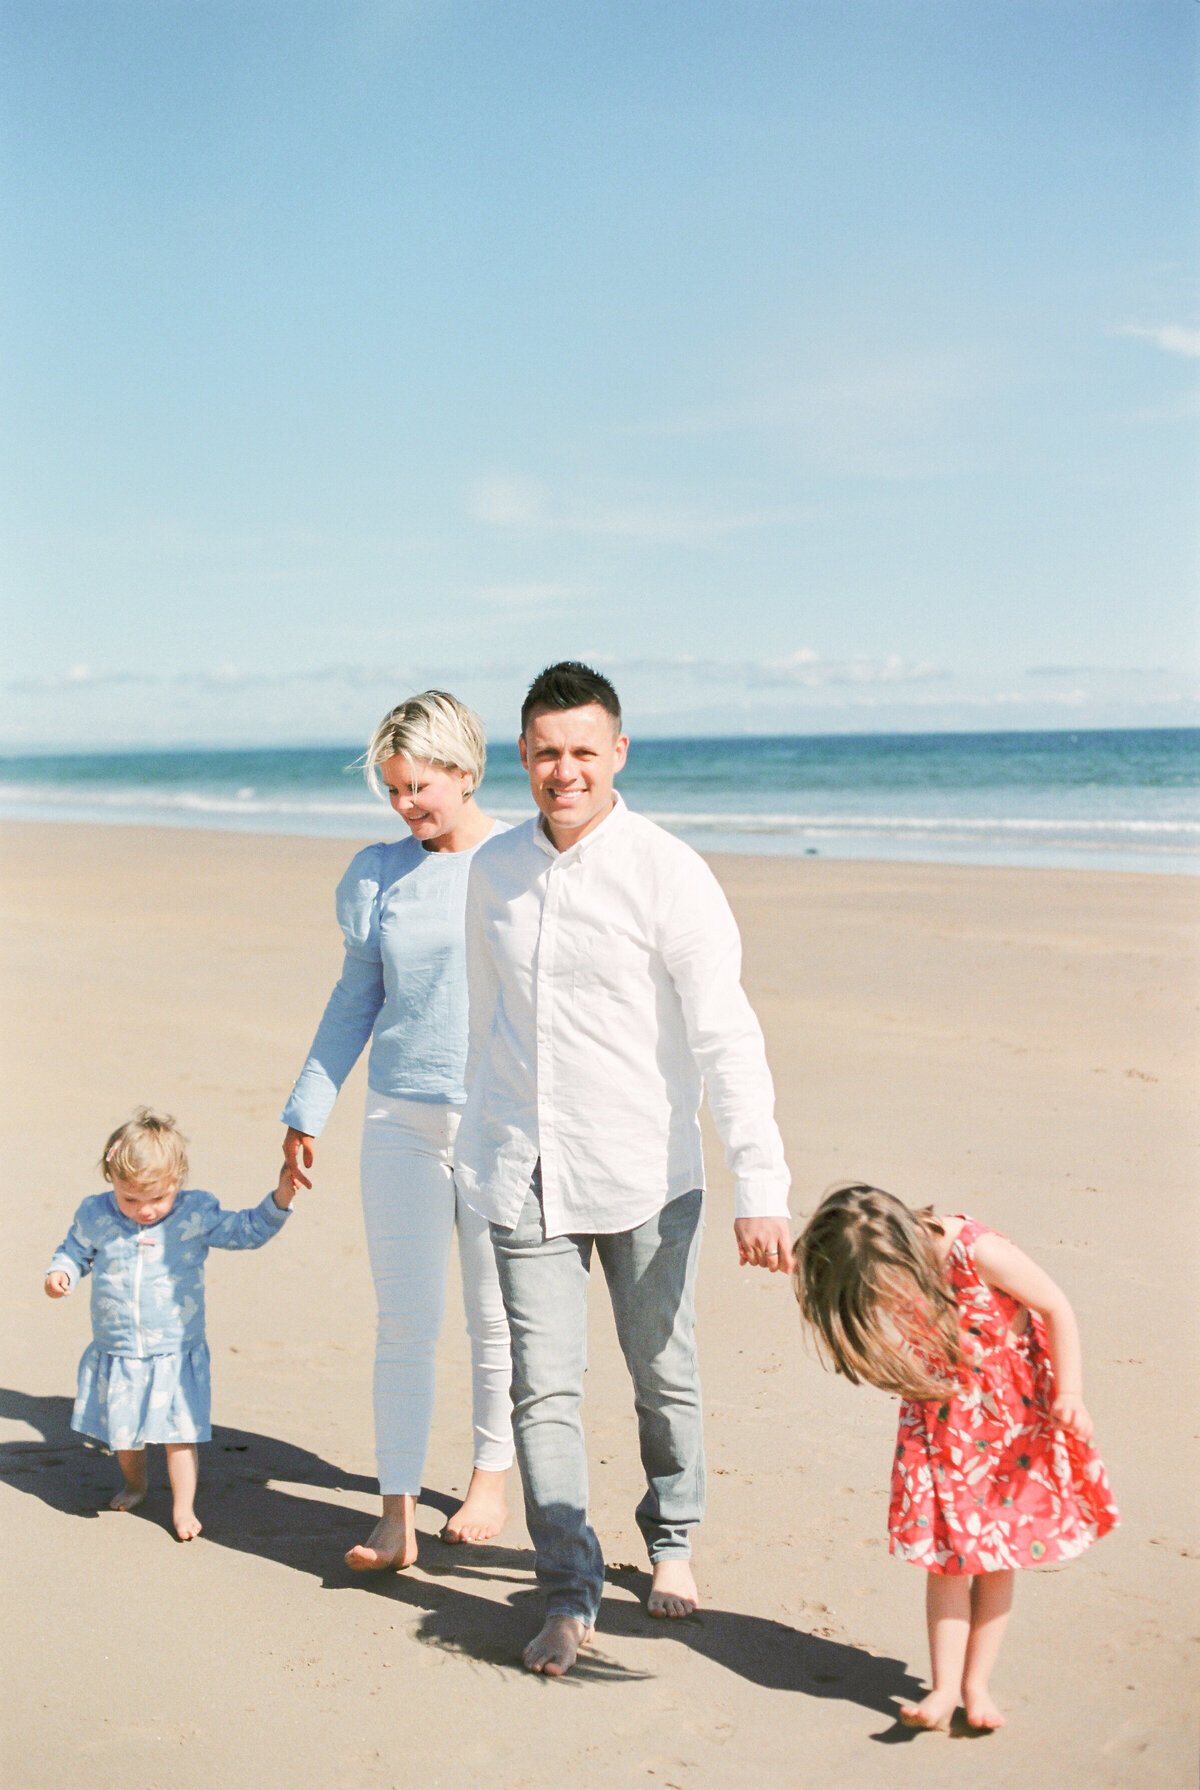 JacquelineAnnePhotography-Christie Family at Tyninghame -95